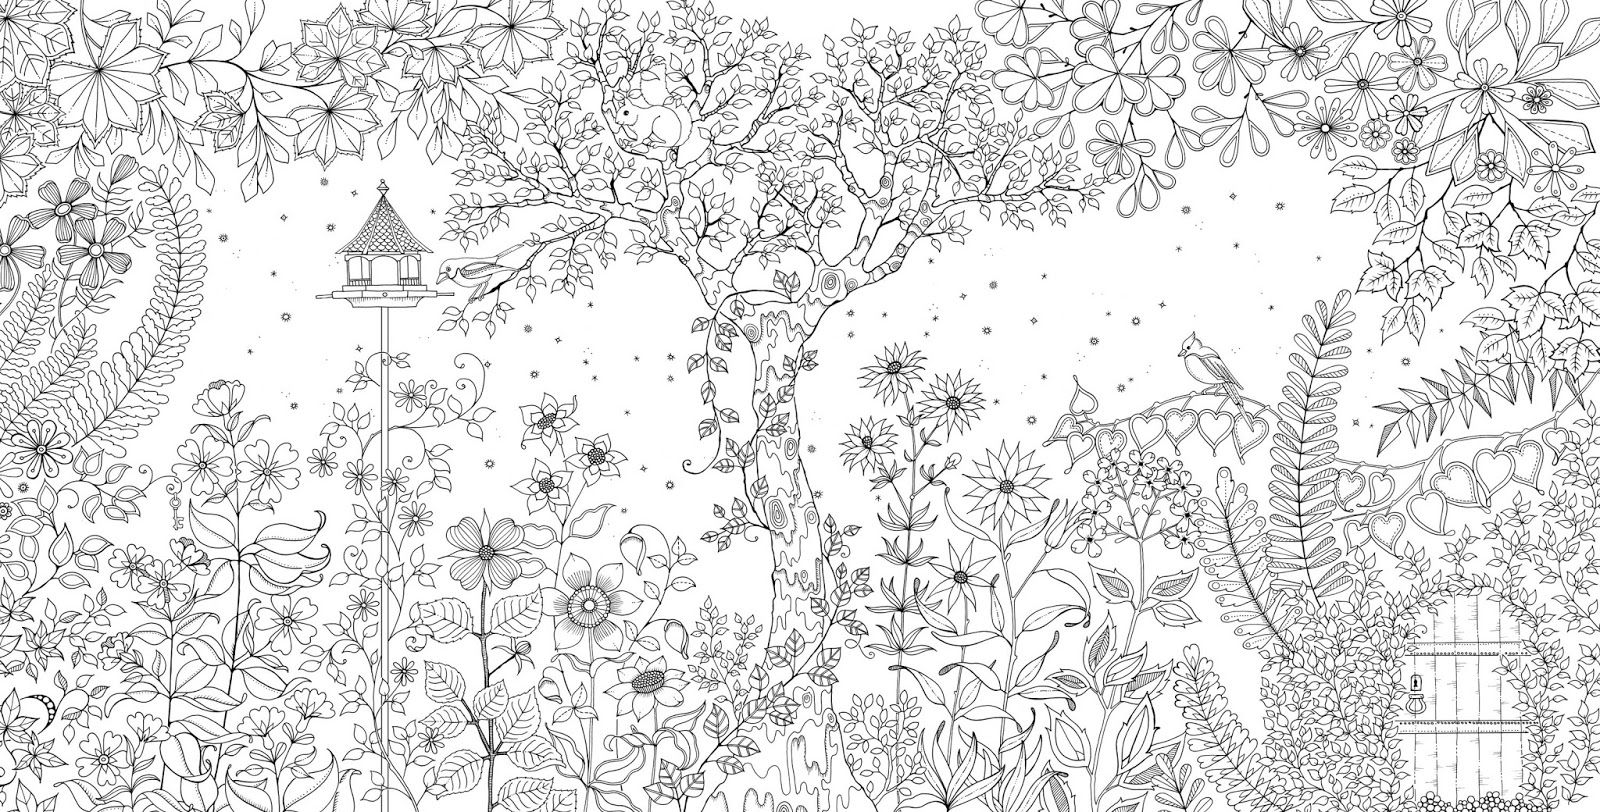 Million Copies Worldwide And Launched The Coloring Craze For Adults Put Scottish Illustrator Johanna Basford On Map CHIARA